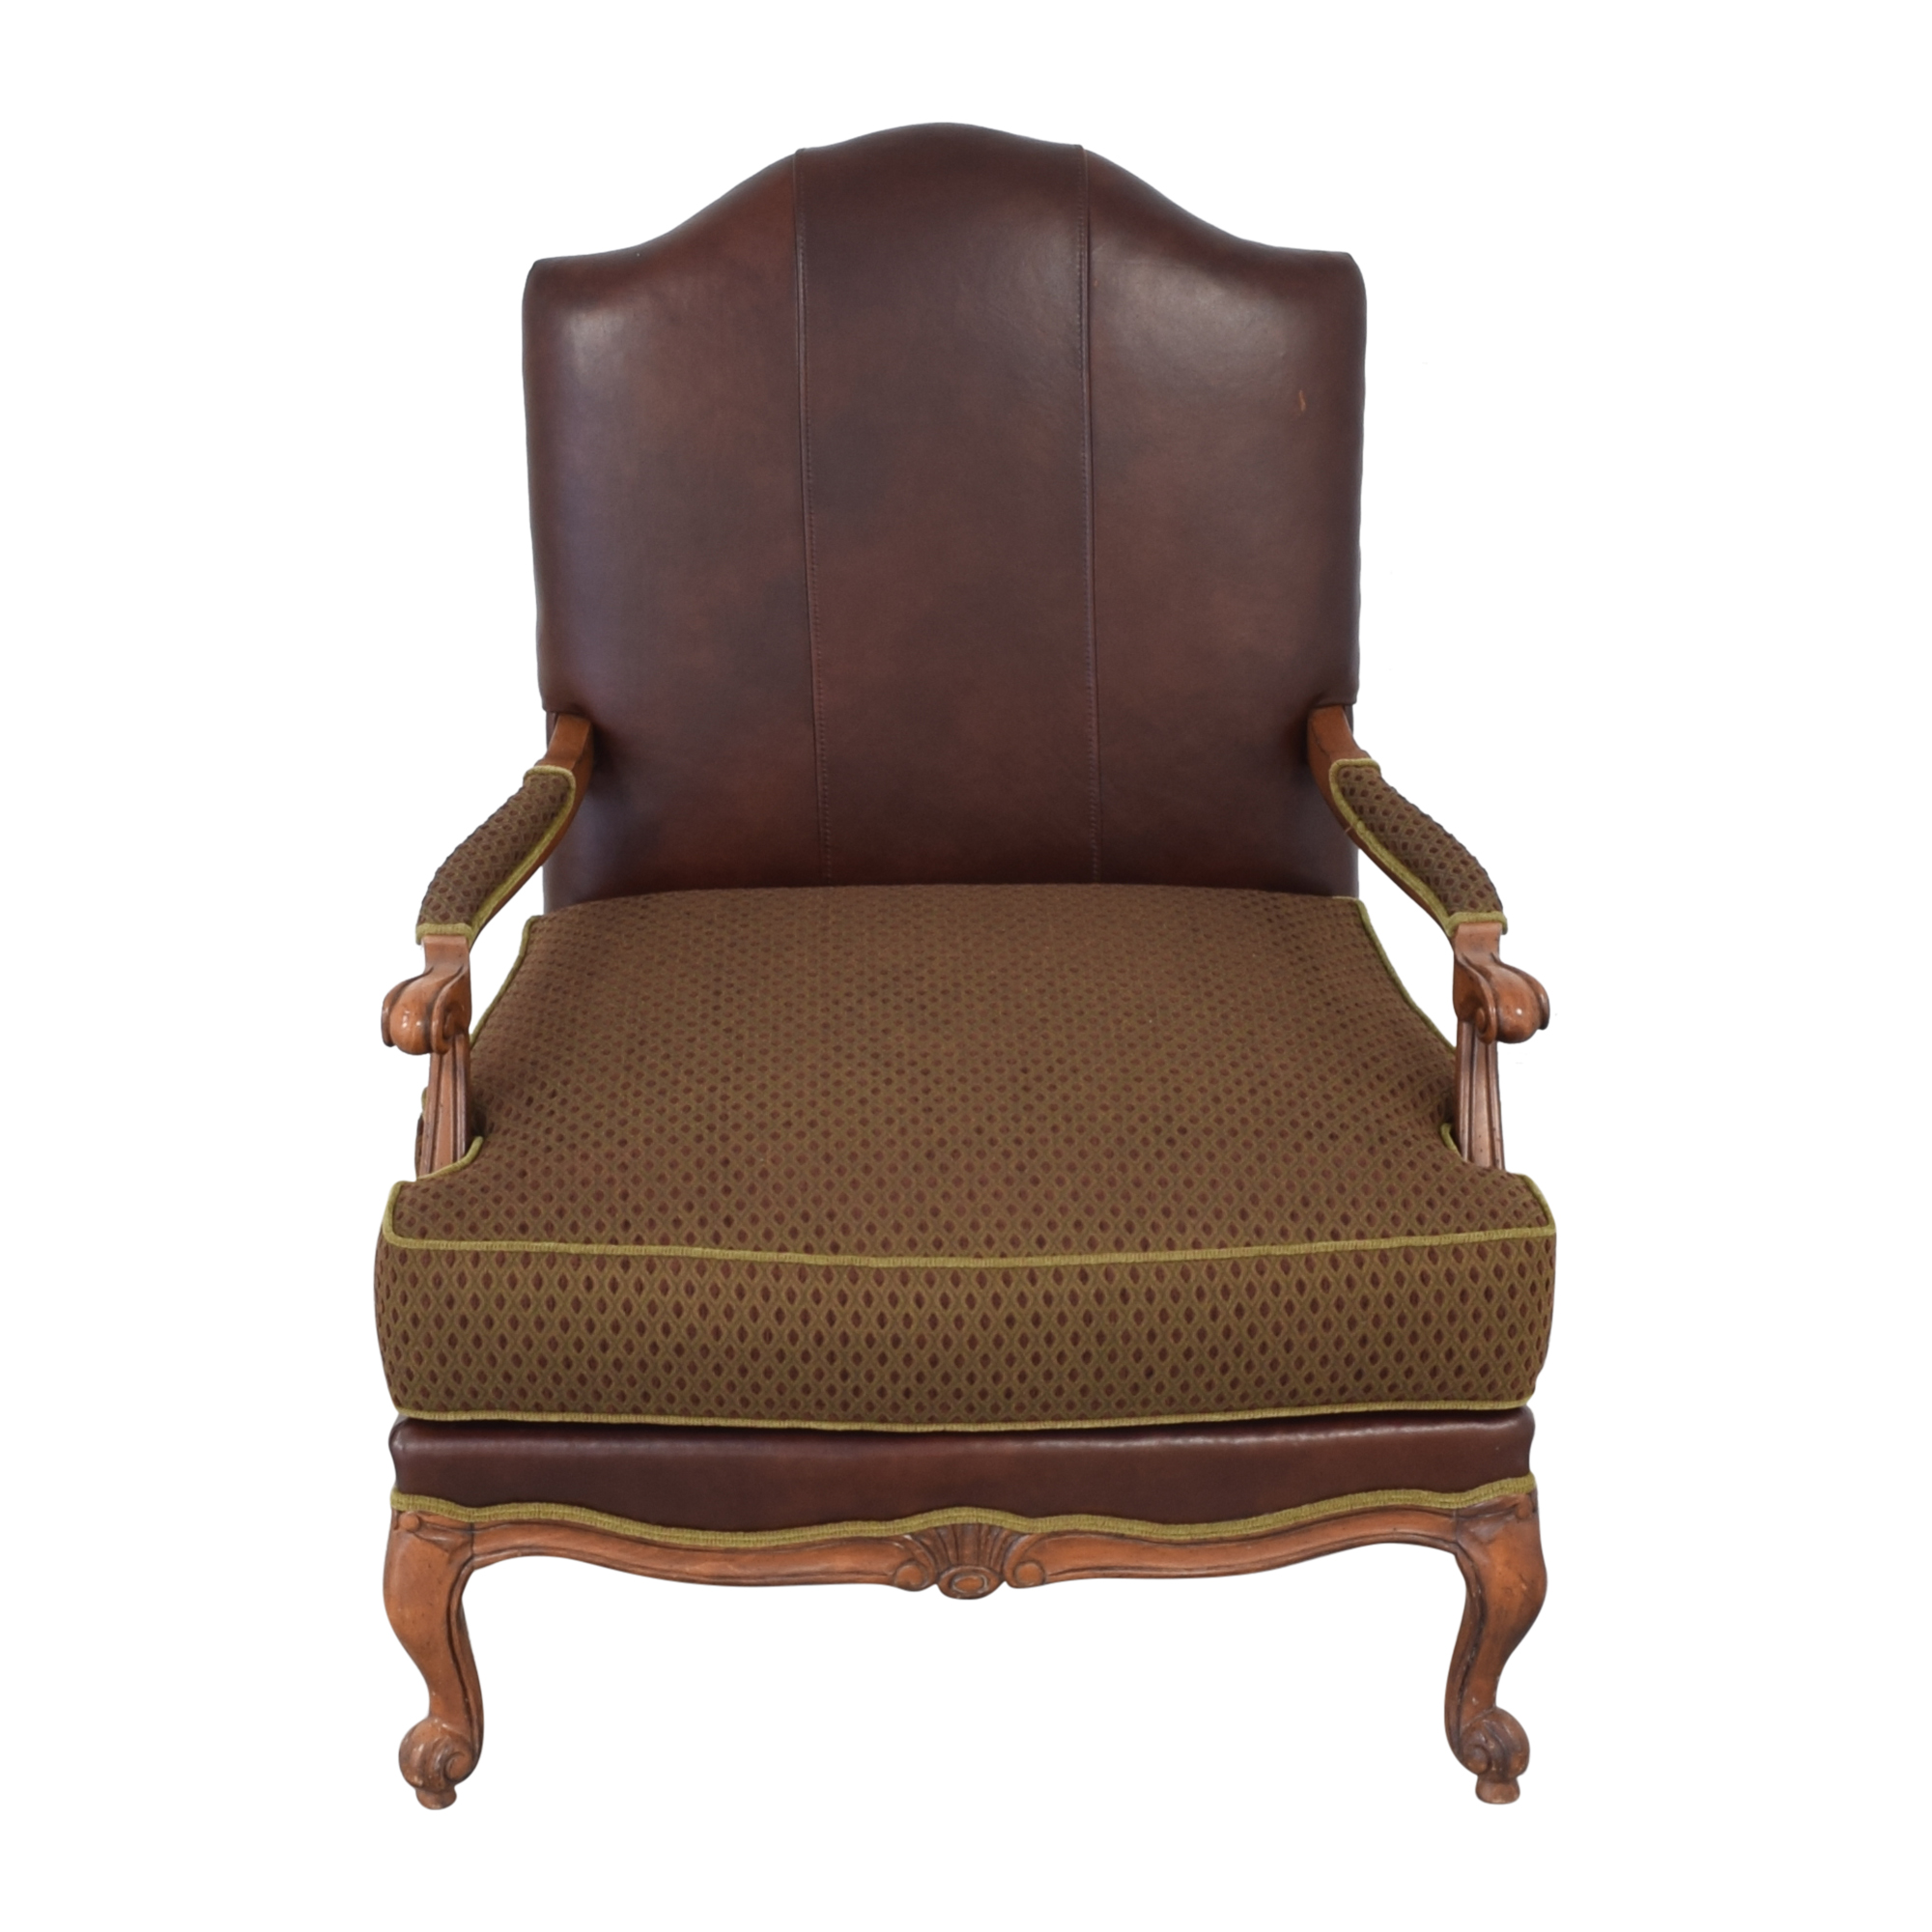 Ethan Allen Ethan Allen Custom Harris Accent Chair for sale